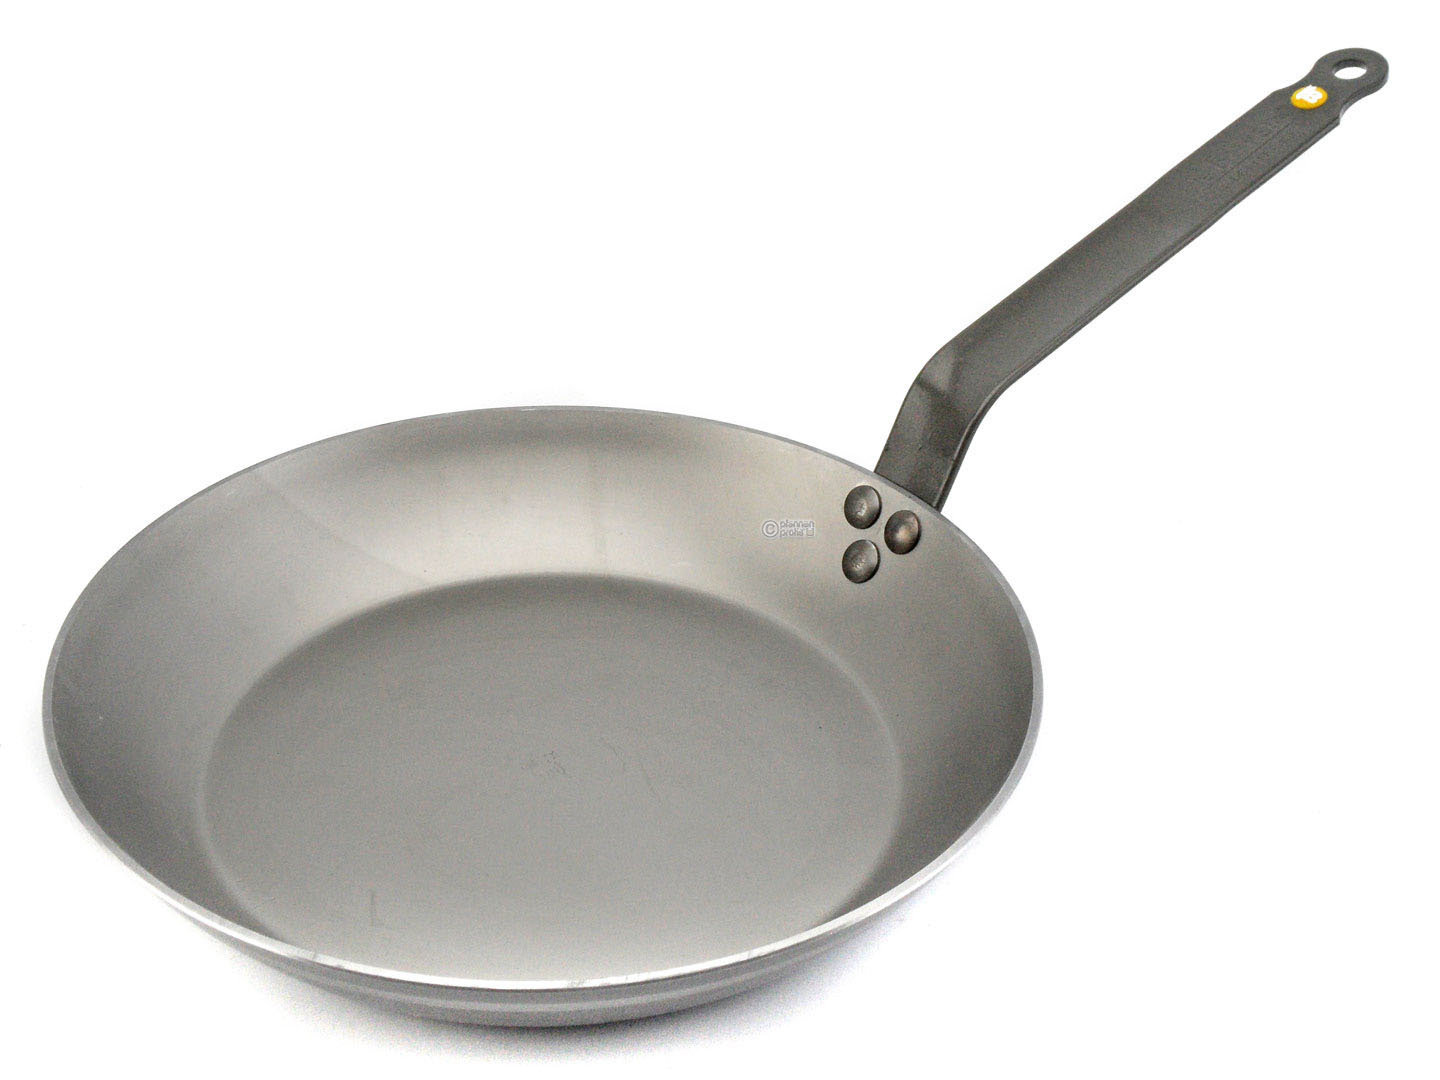 DE BUYER iron pan MINERAL B ELEMENT 28 cm frypan